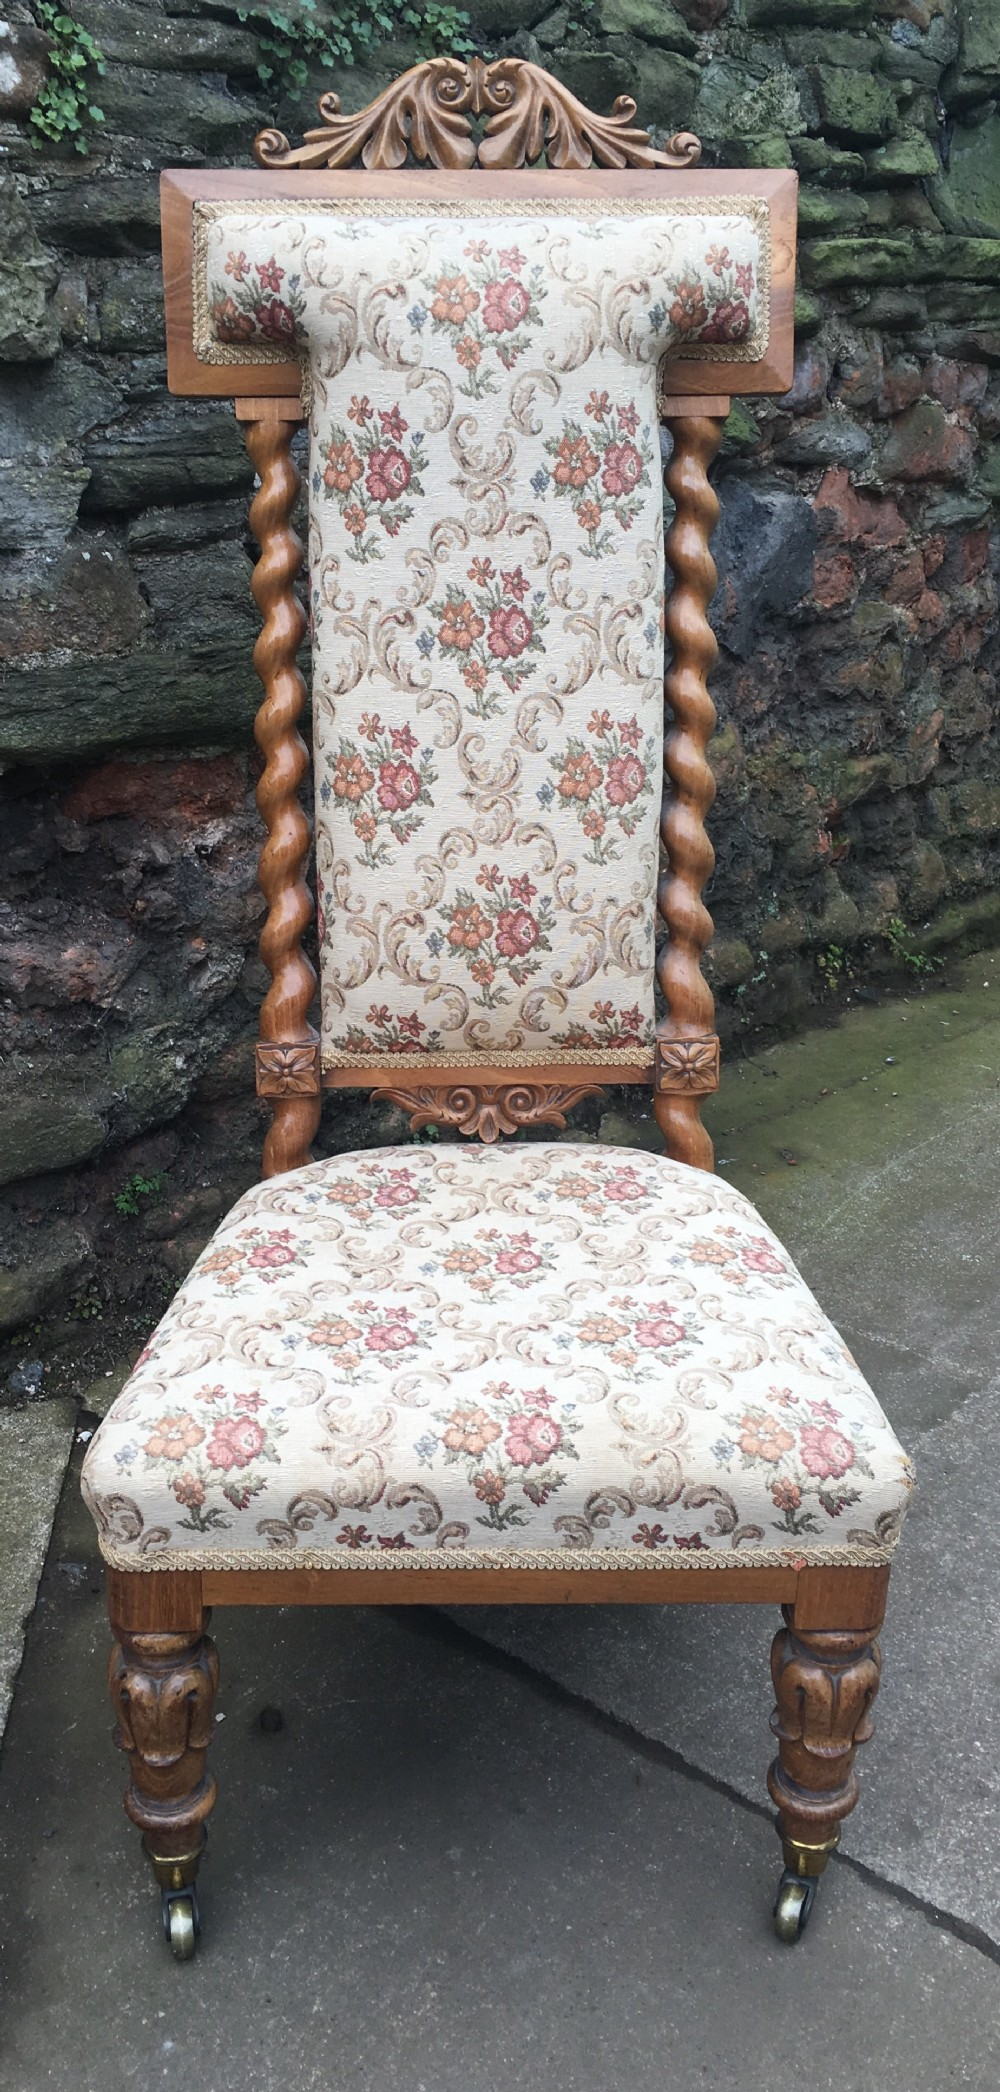 c19th ash wood nursing chair or priedieu